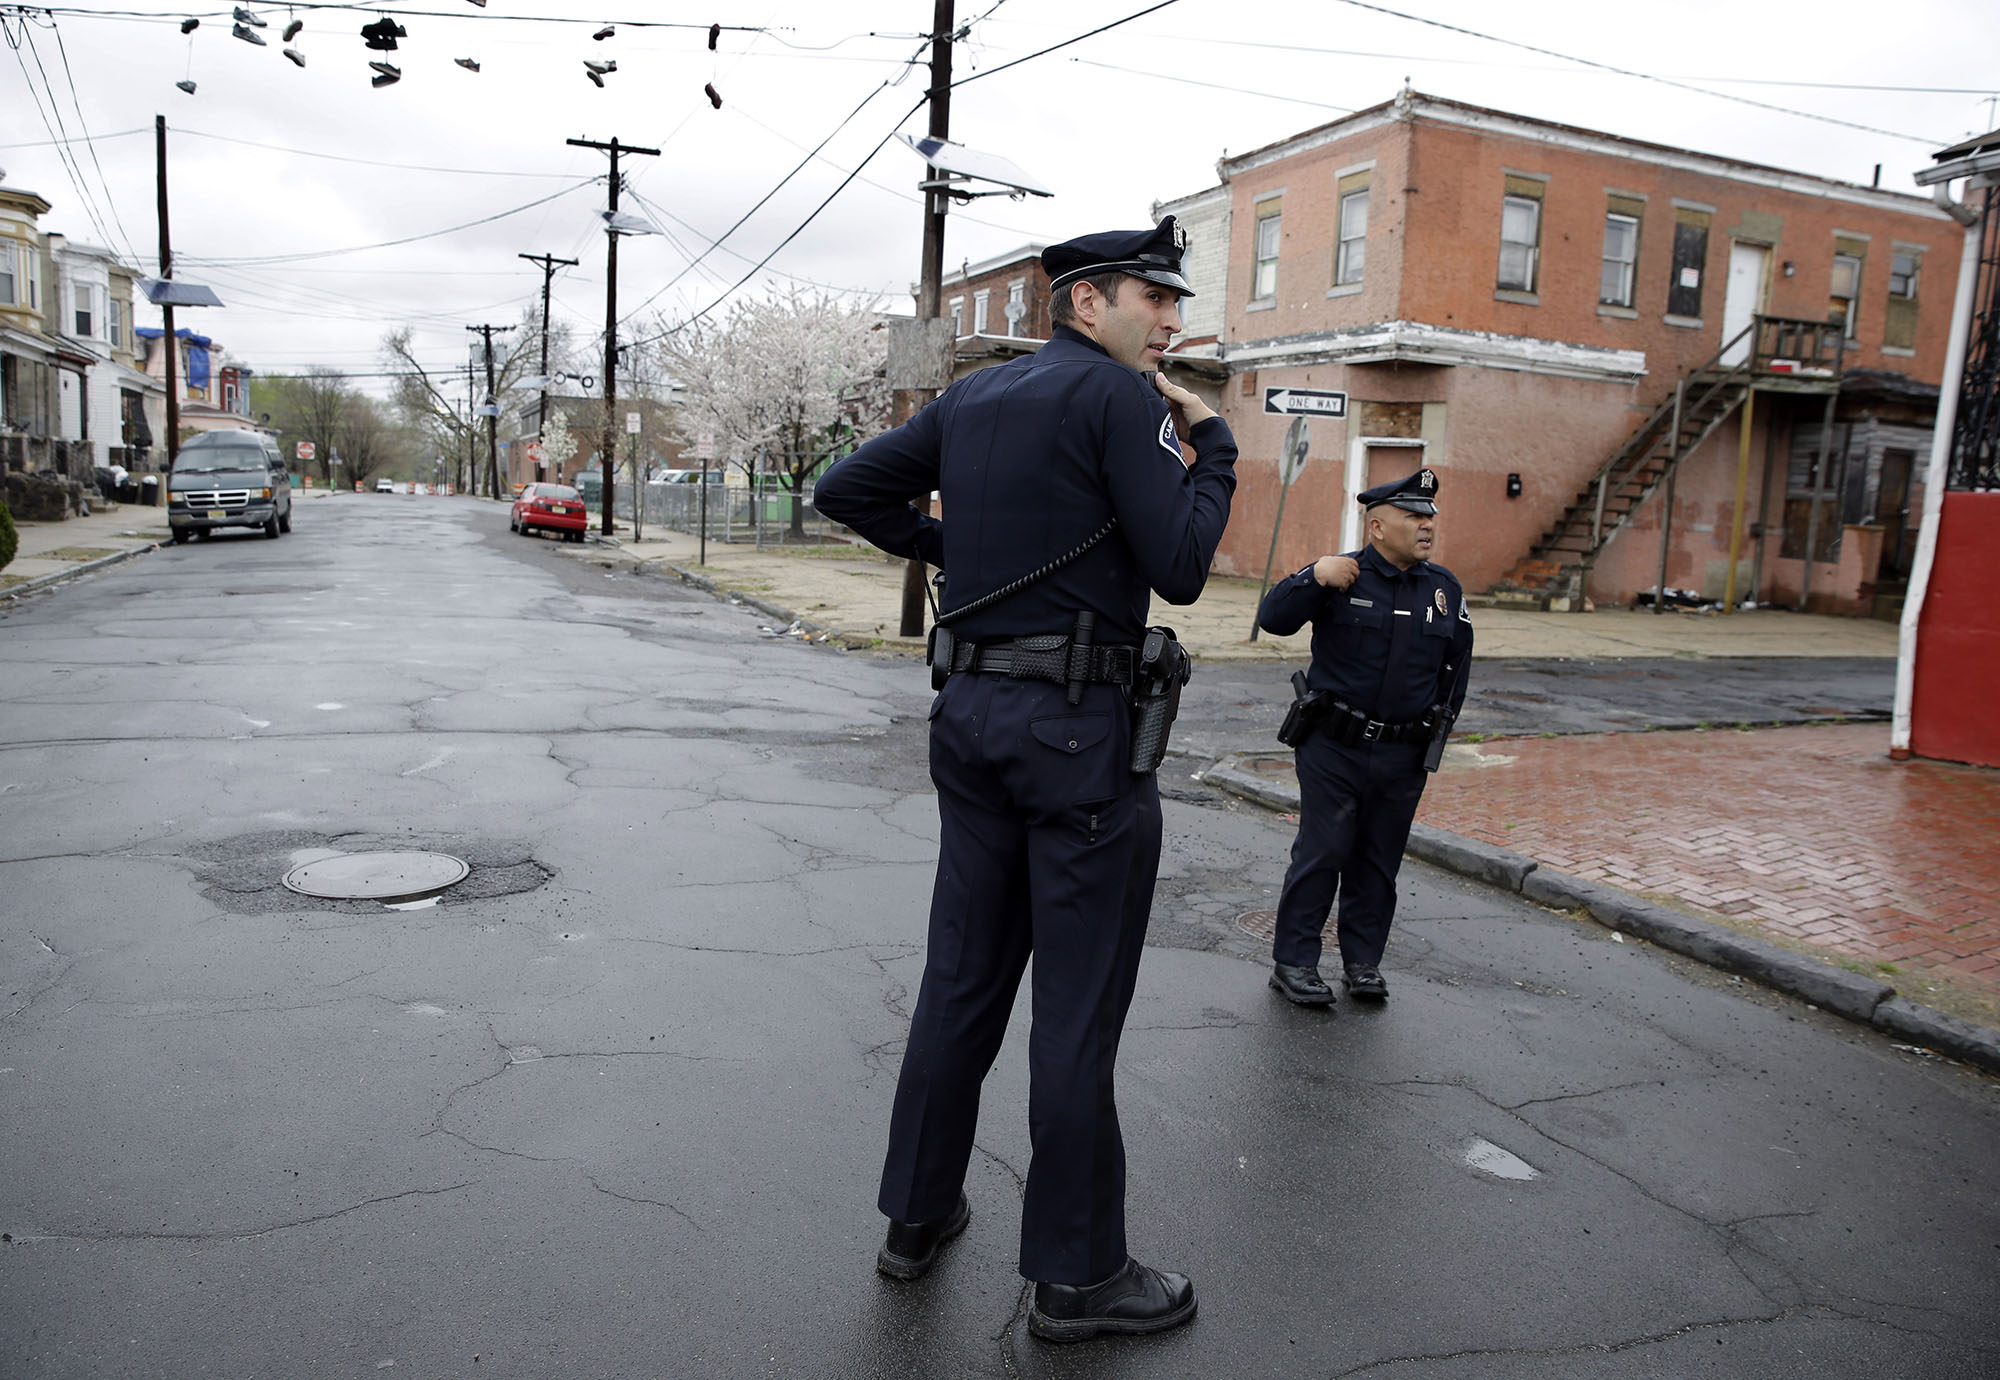 In this Tuesday, April 15, 2014 photograph, Camden County Metro police officers Lucas Murray, left, and Daniel Torres react to what they thought was a gunshot, as they patrol a neighborhood in Camden, N.J.